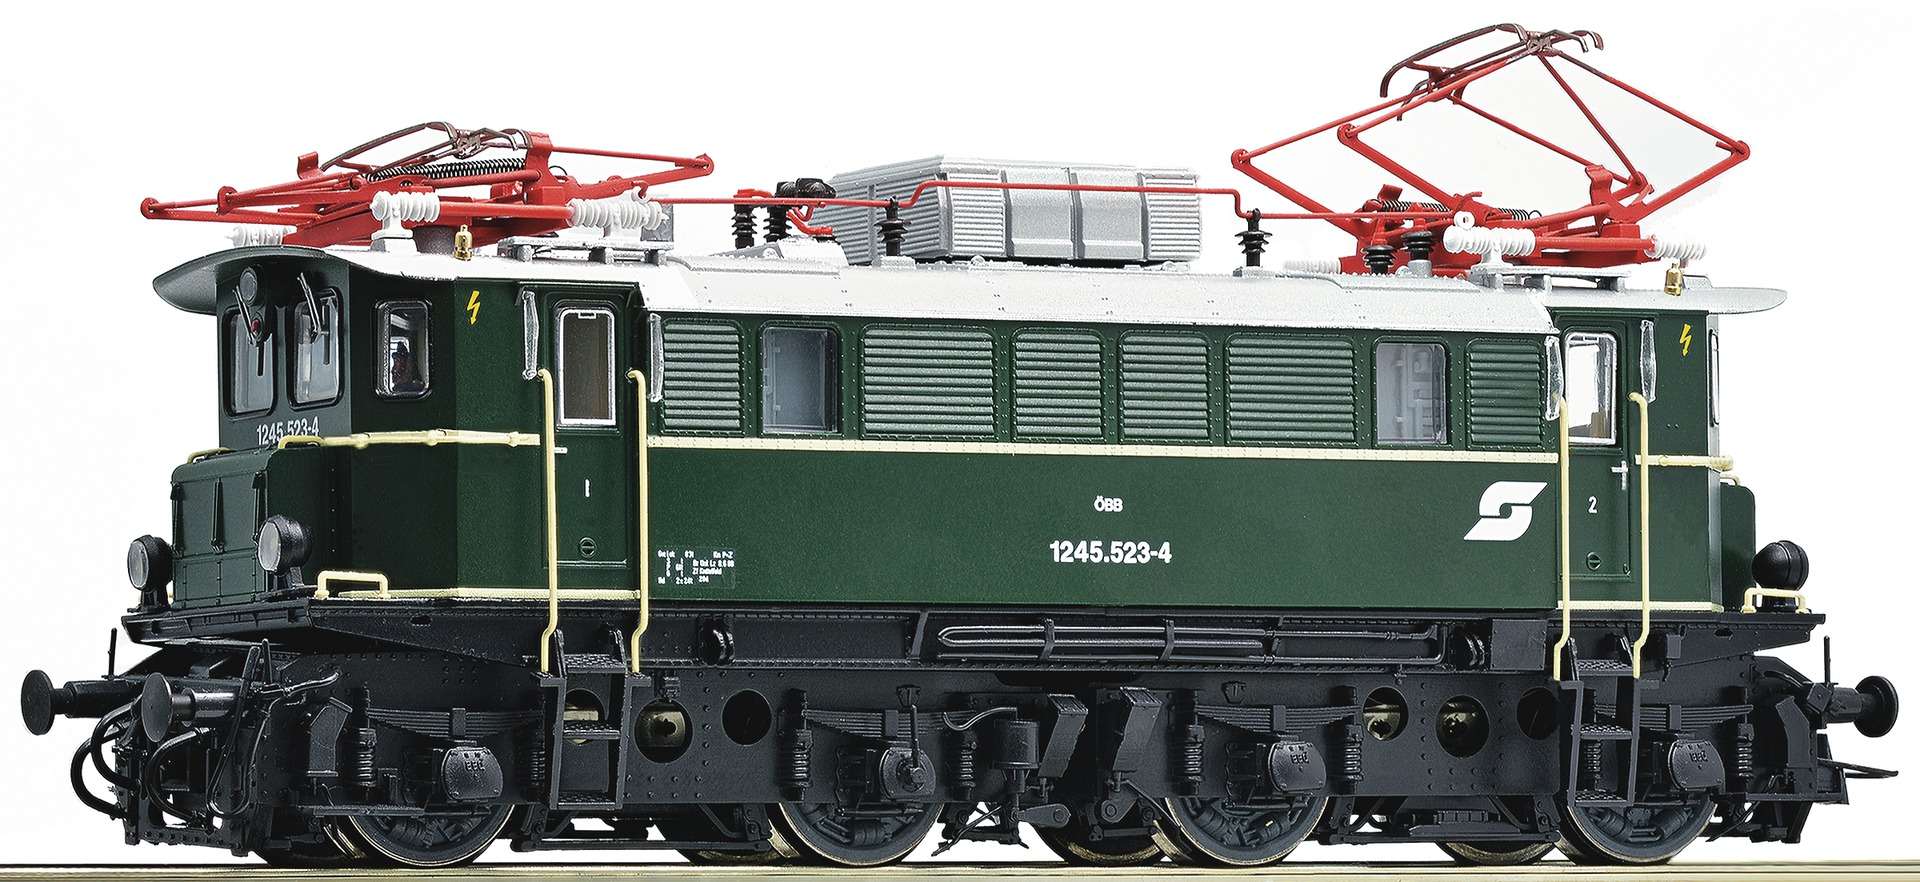 Electric locomotive series 1245